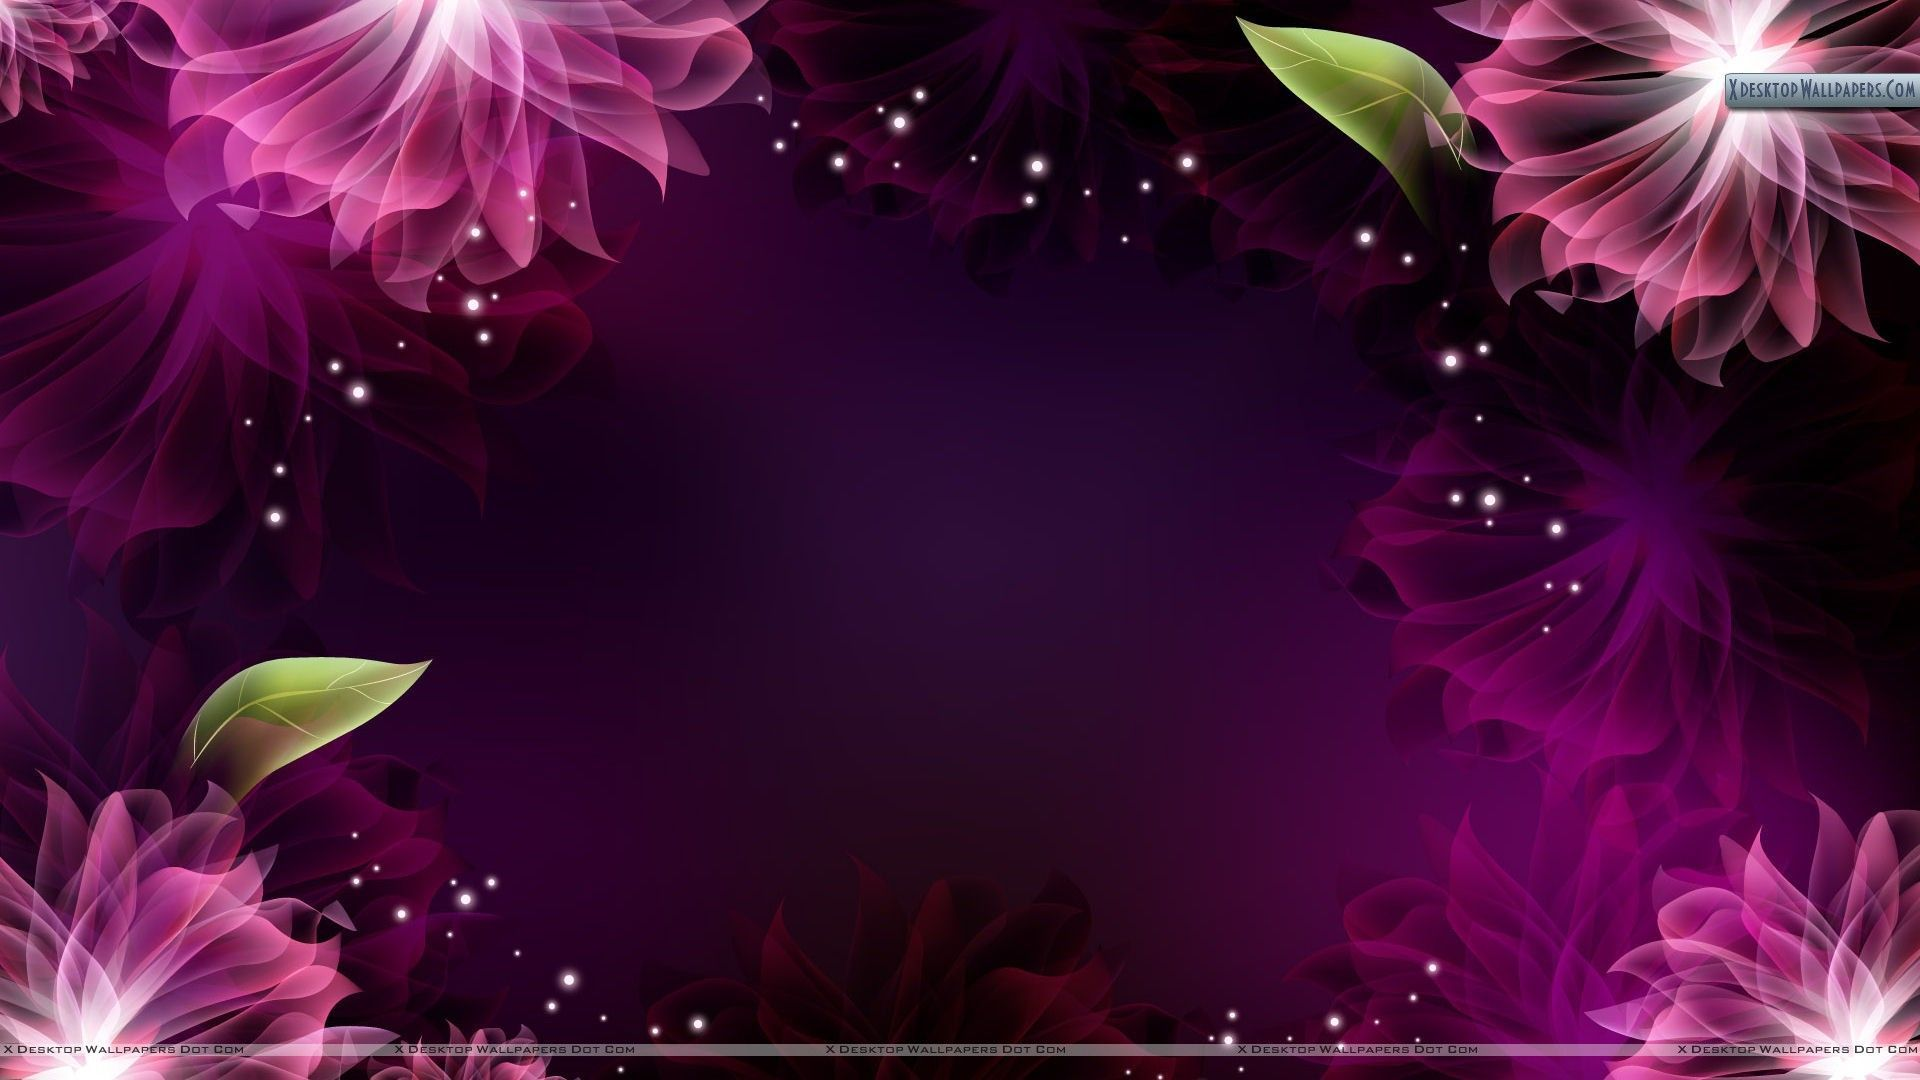 Free wallpaper backgrounds flowers banner royalty free download Free background images flowers - ClipartFest banner royalty free download